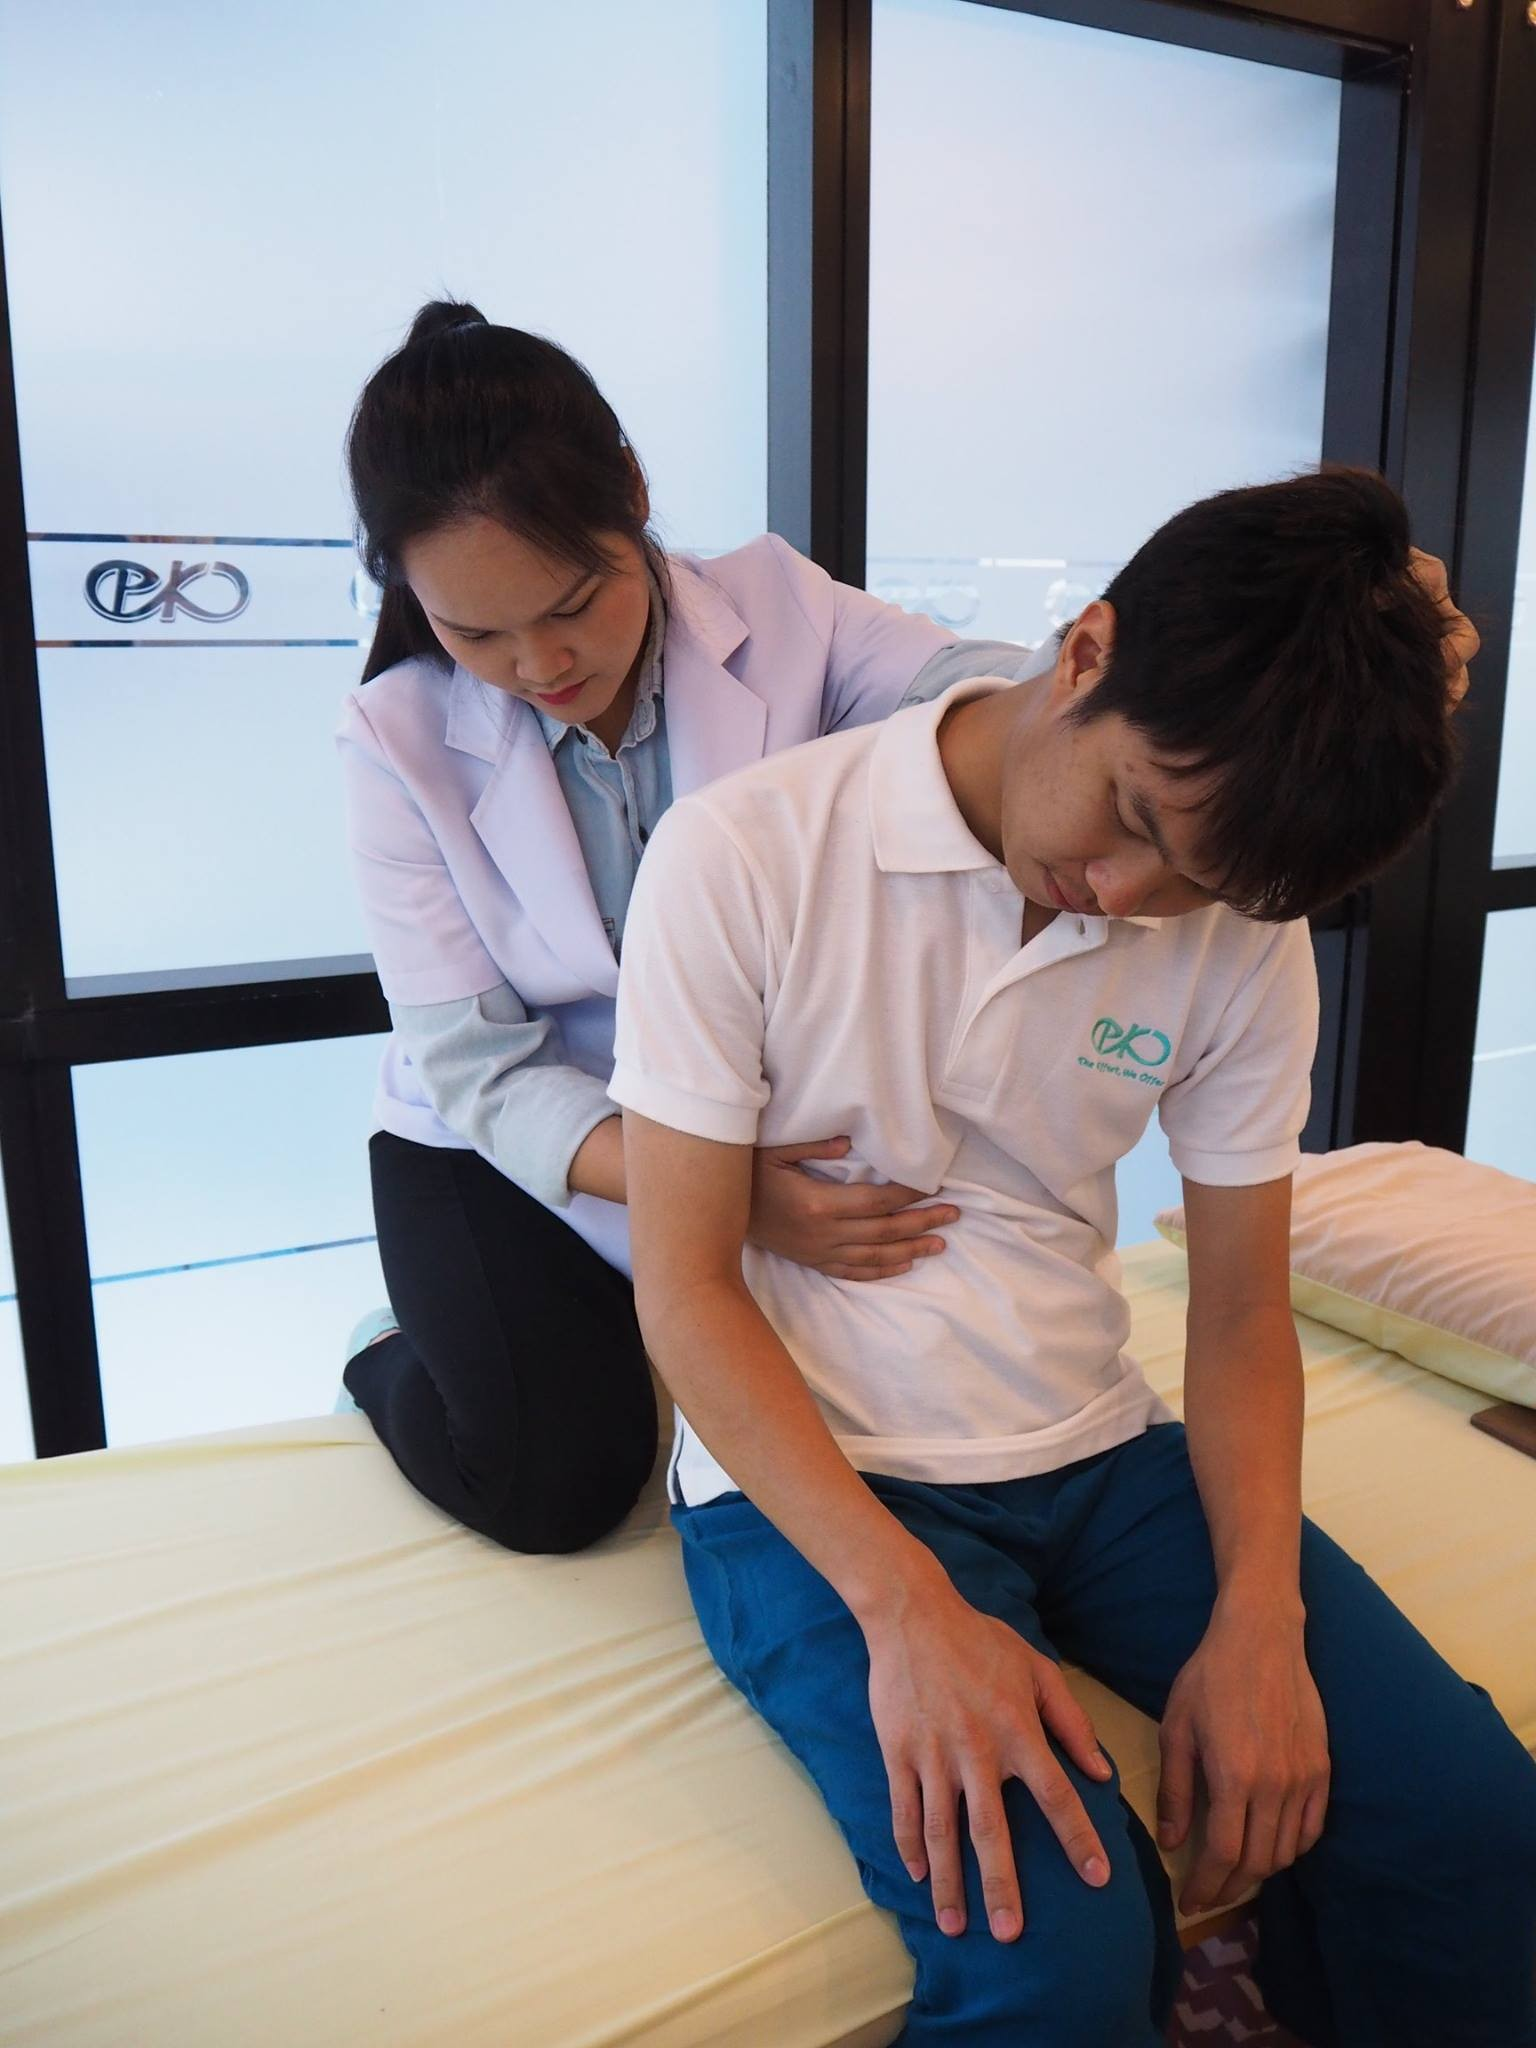 PK Physical therapy clinic